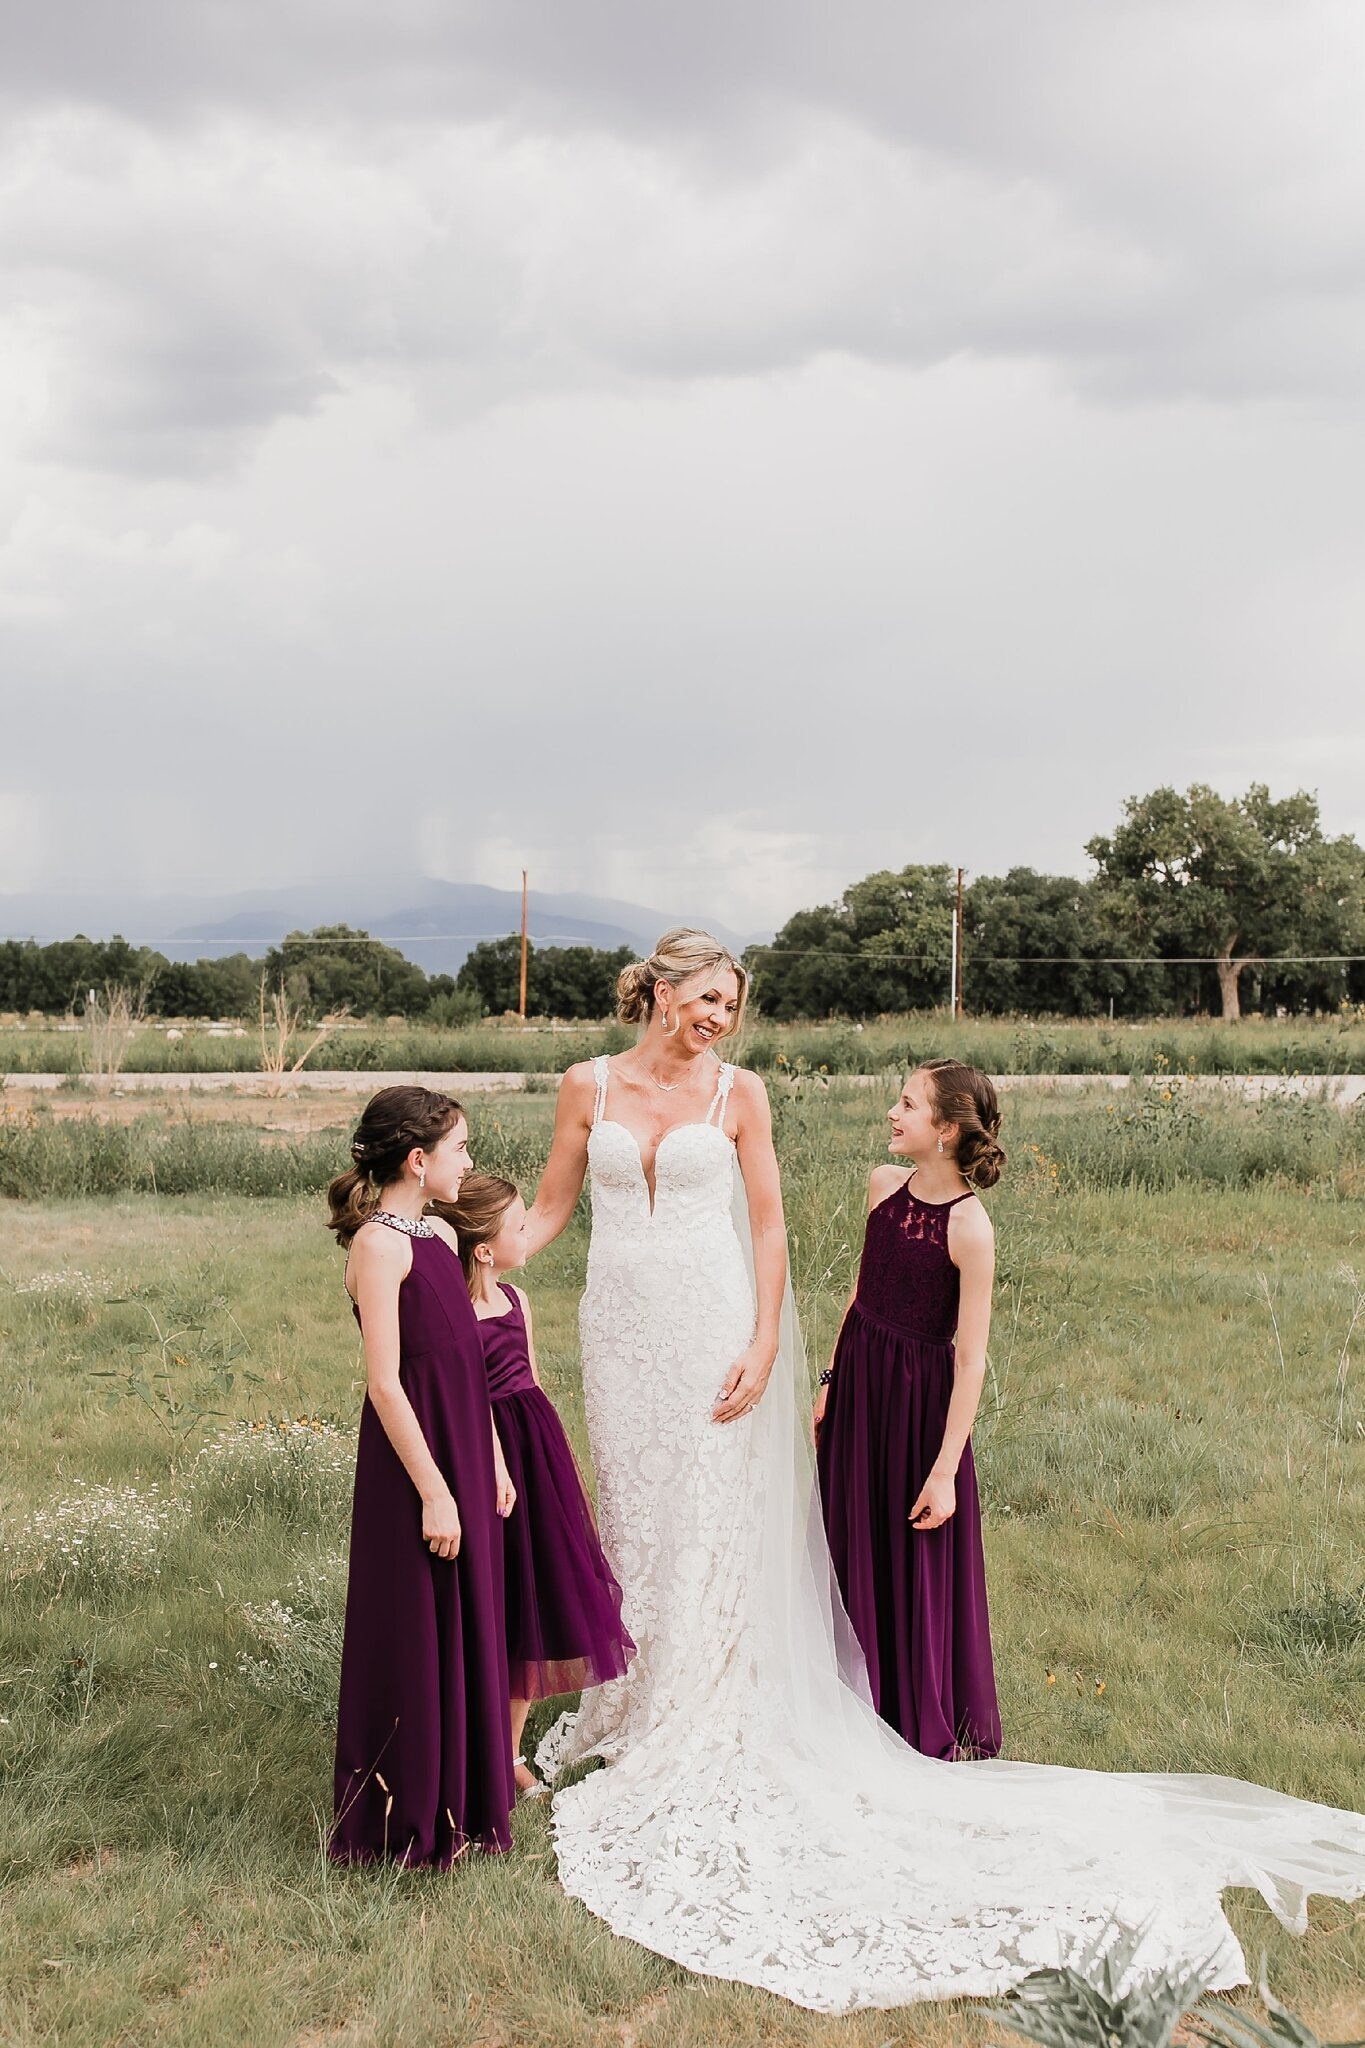 Alicia+lucia+photography+-+albuquerque+wedding+photographer+-+santa+fe+wedding+photography+-+new+mexico+wedding+photographer+-+new+mexico+wedding+-+wedding+makeup+-+wedidng+hair+-+wedding+makeup+artist+-+wedding+hair+stylist+-+drs+color+studio_0005.jpg